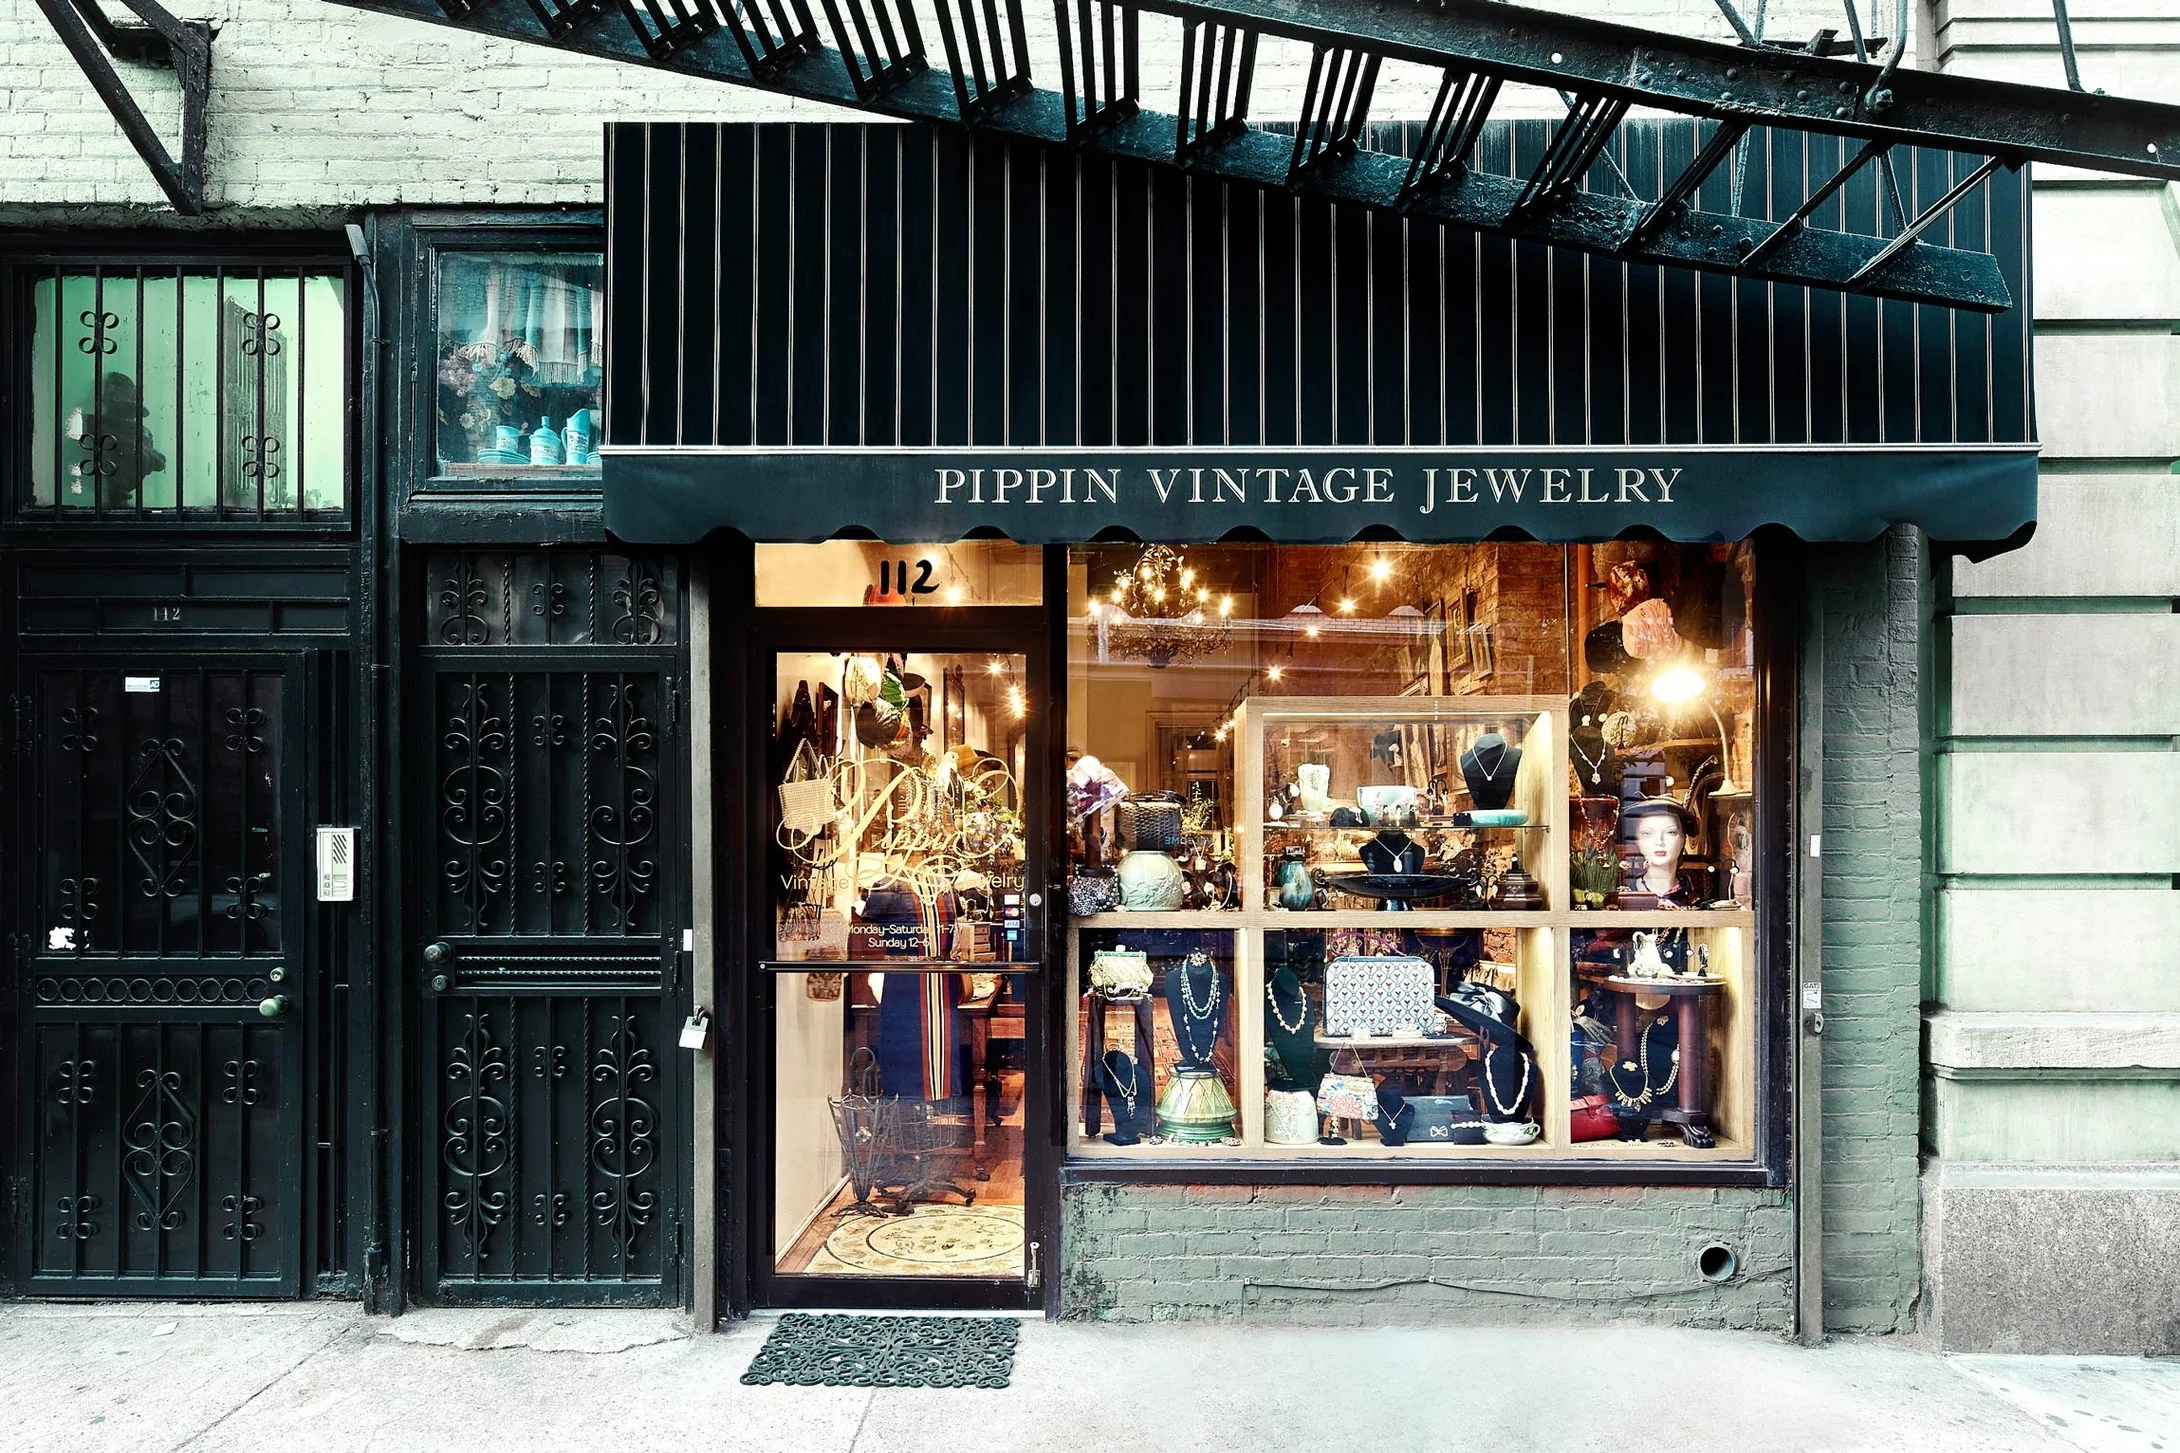 Pippin Vintage Jewelry   Brick and Mortar Store in Chelsea. NY 10011